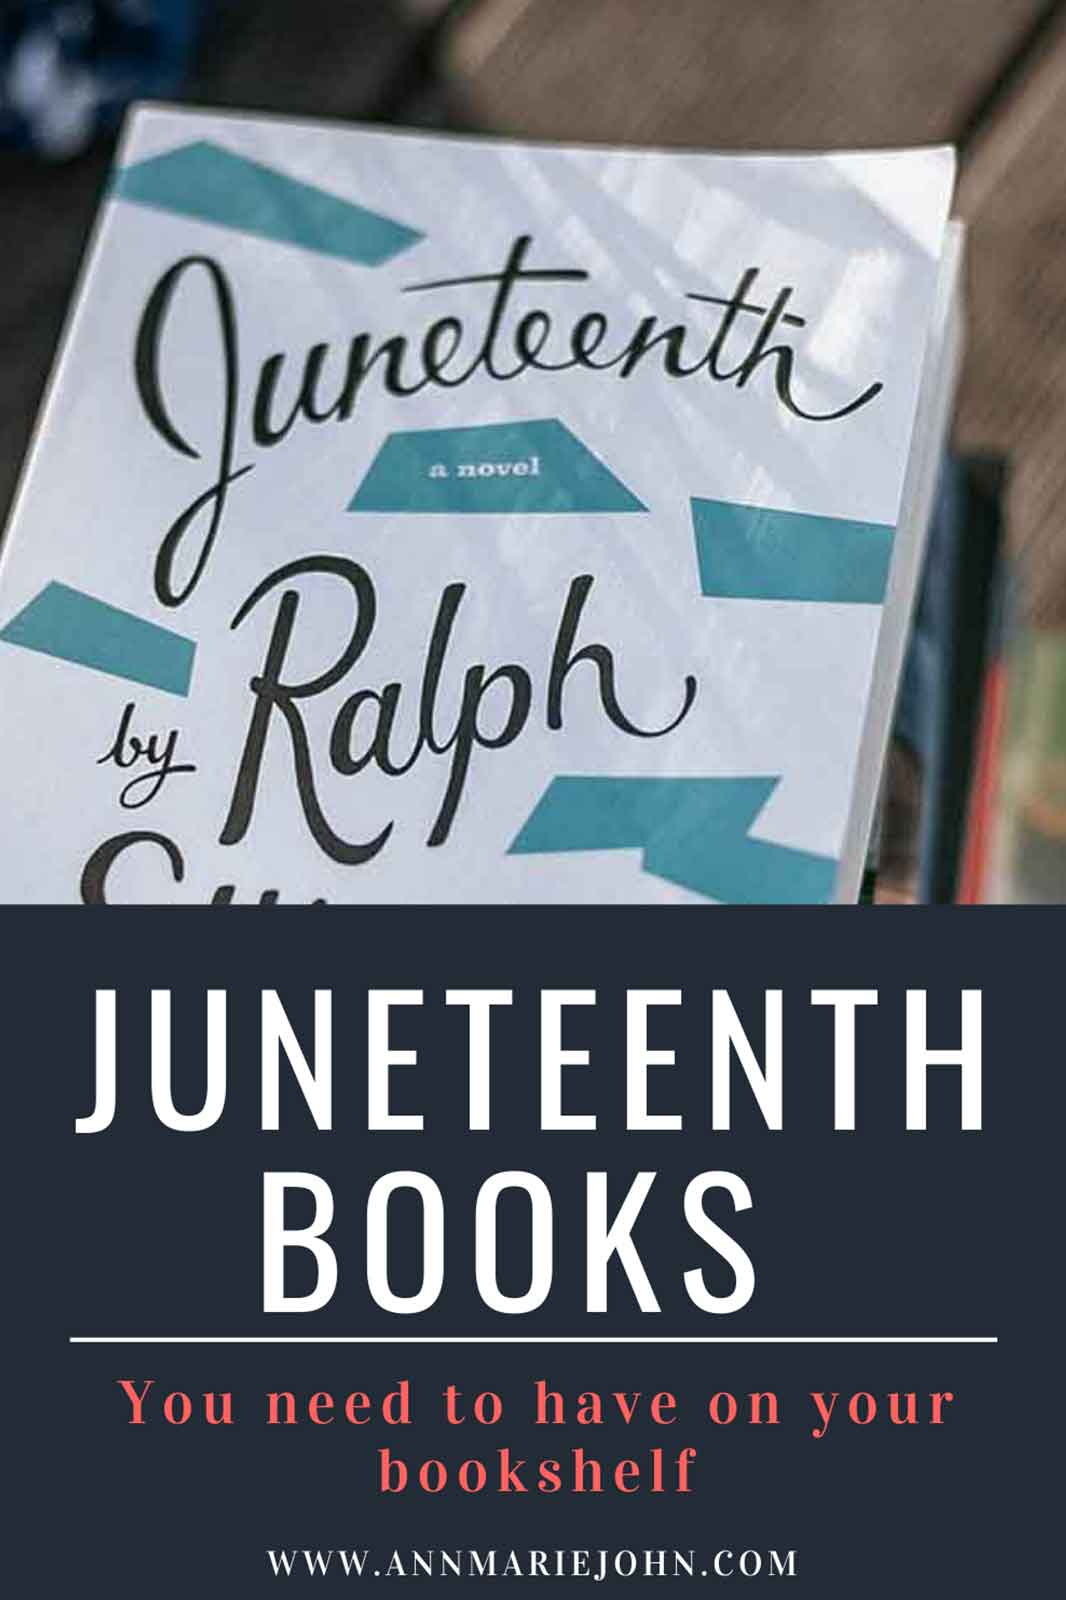 Juneteenth Books You Need to Have On Your Bookshelf